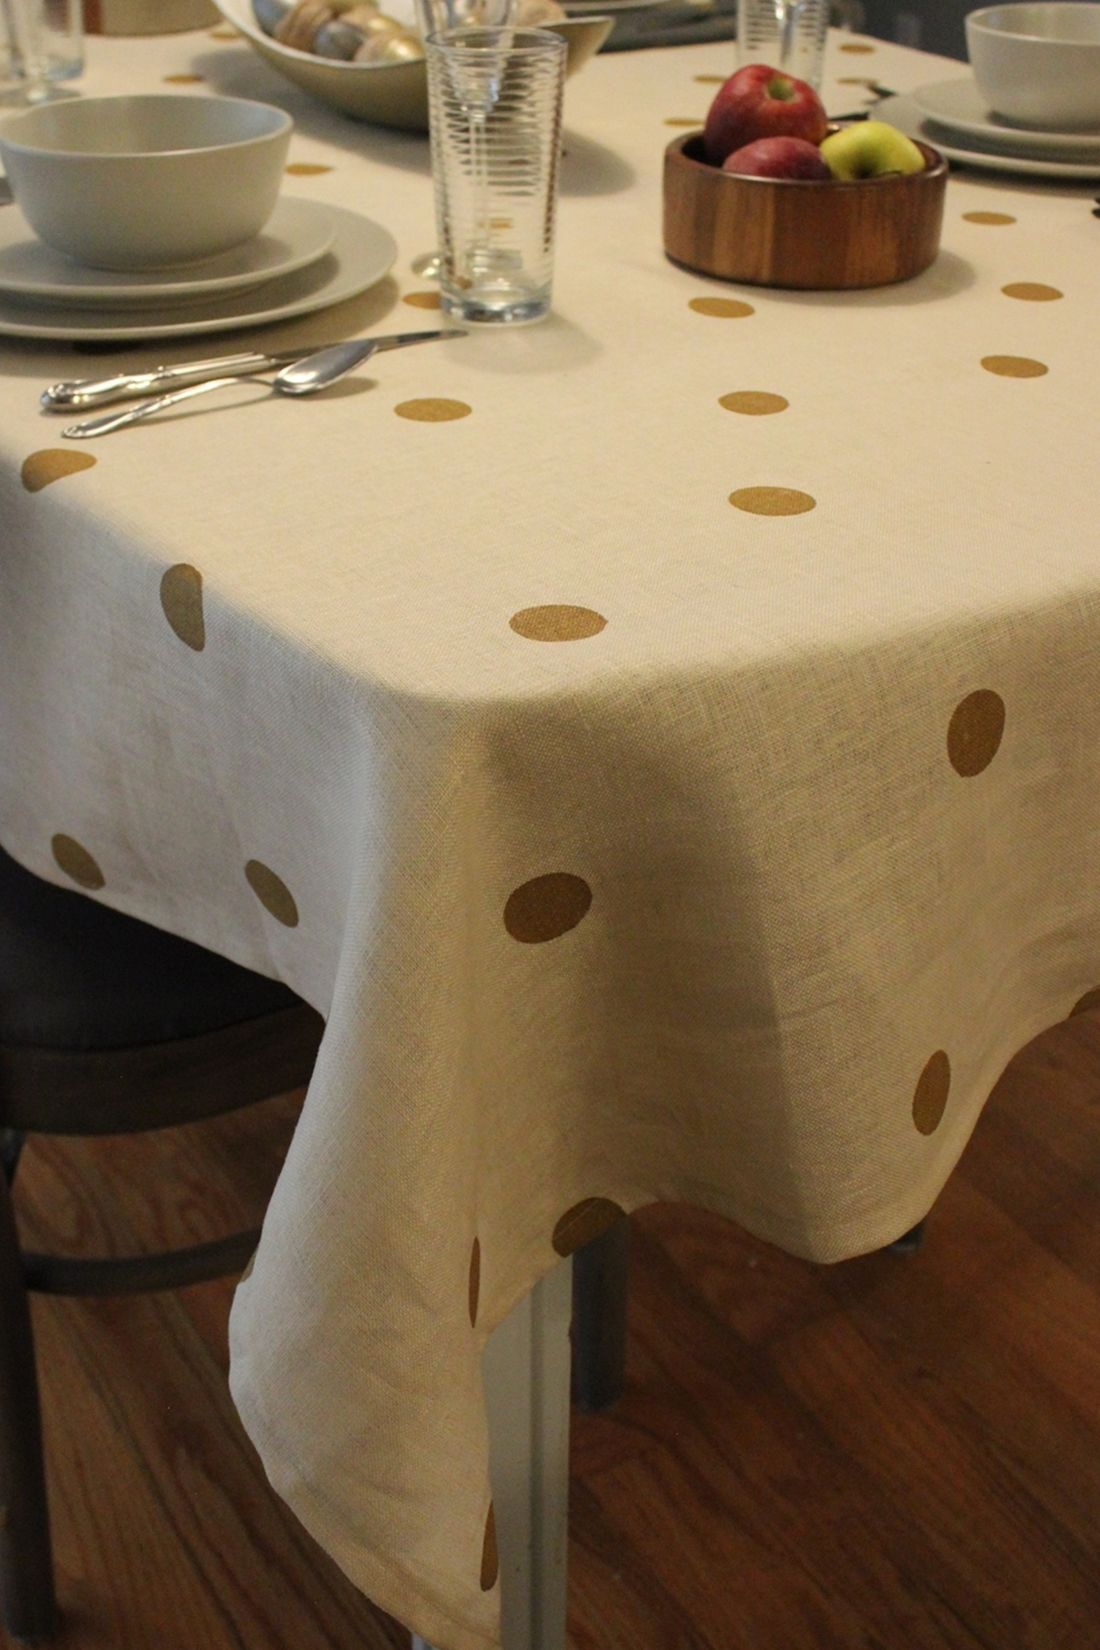 DIY Polka Dot Tablecloth Tutorial